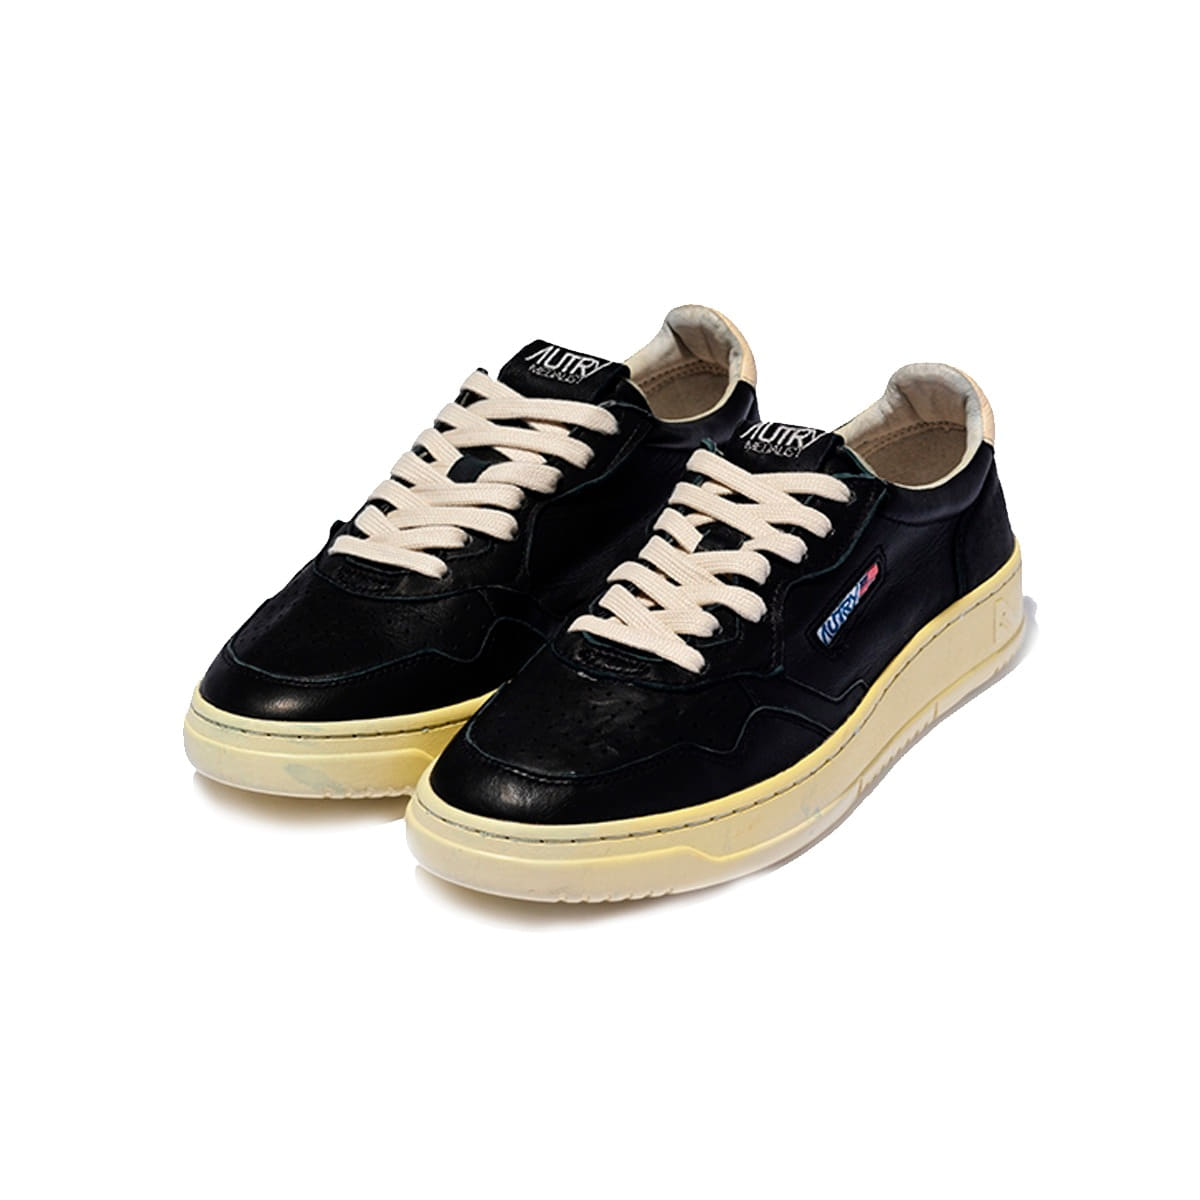 [AUTRY] MEDALIST SNEAKERS GOAT/GOAT 'BLACK'